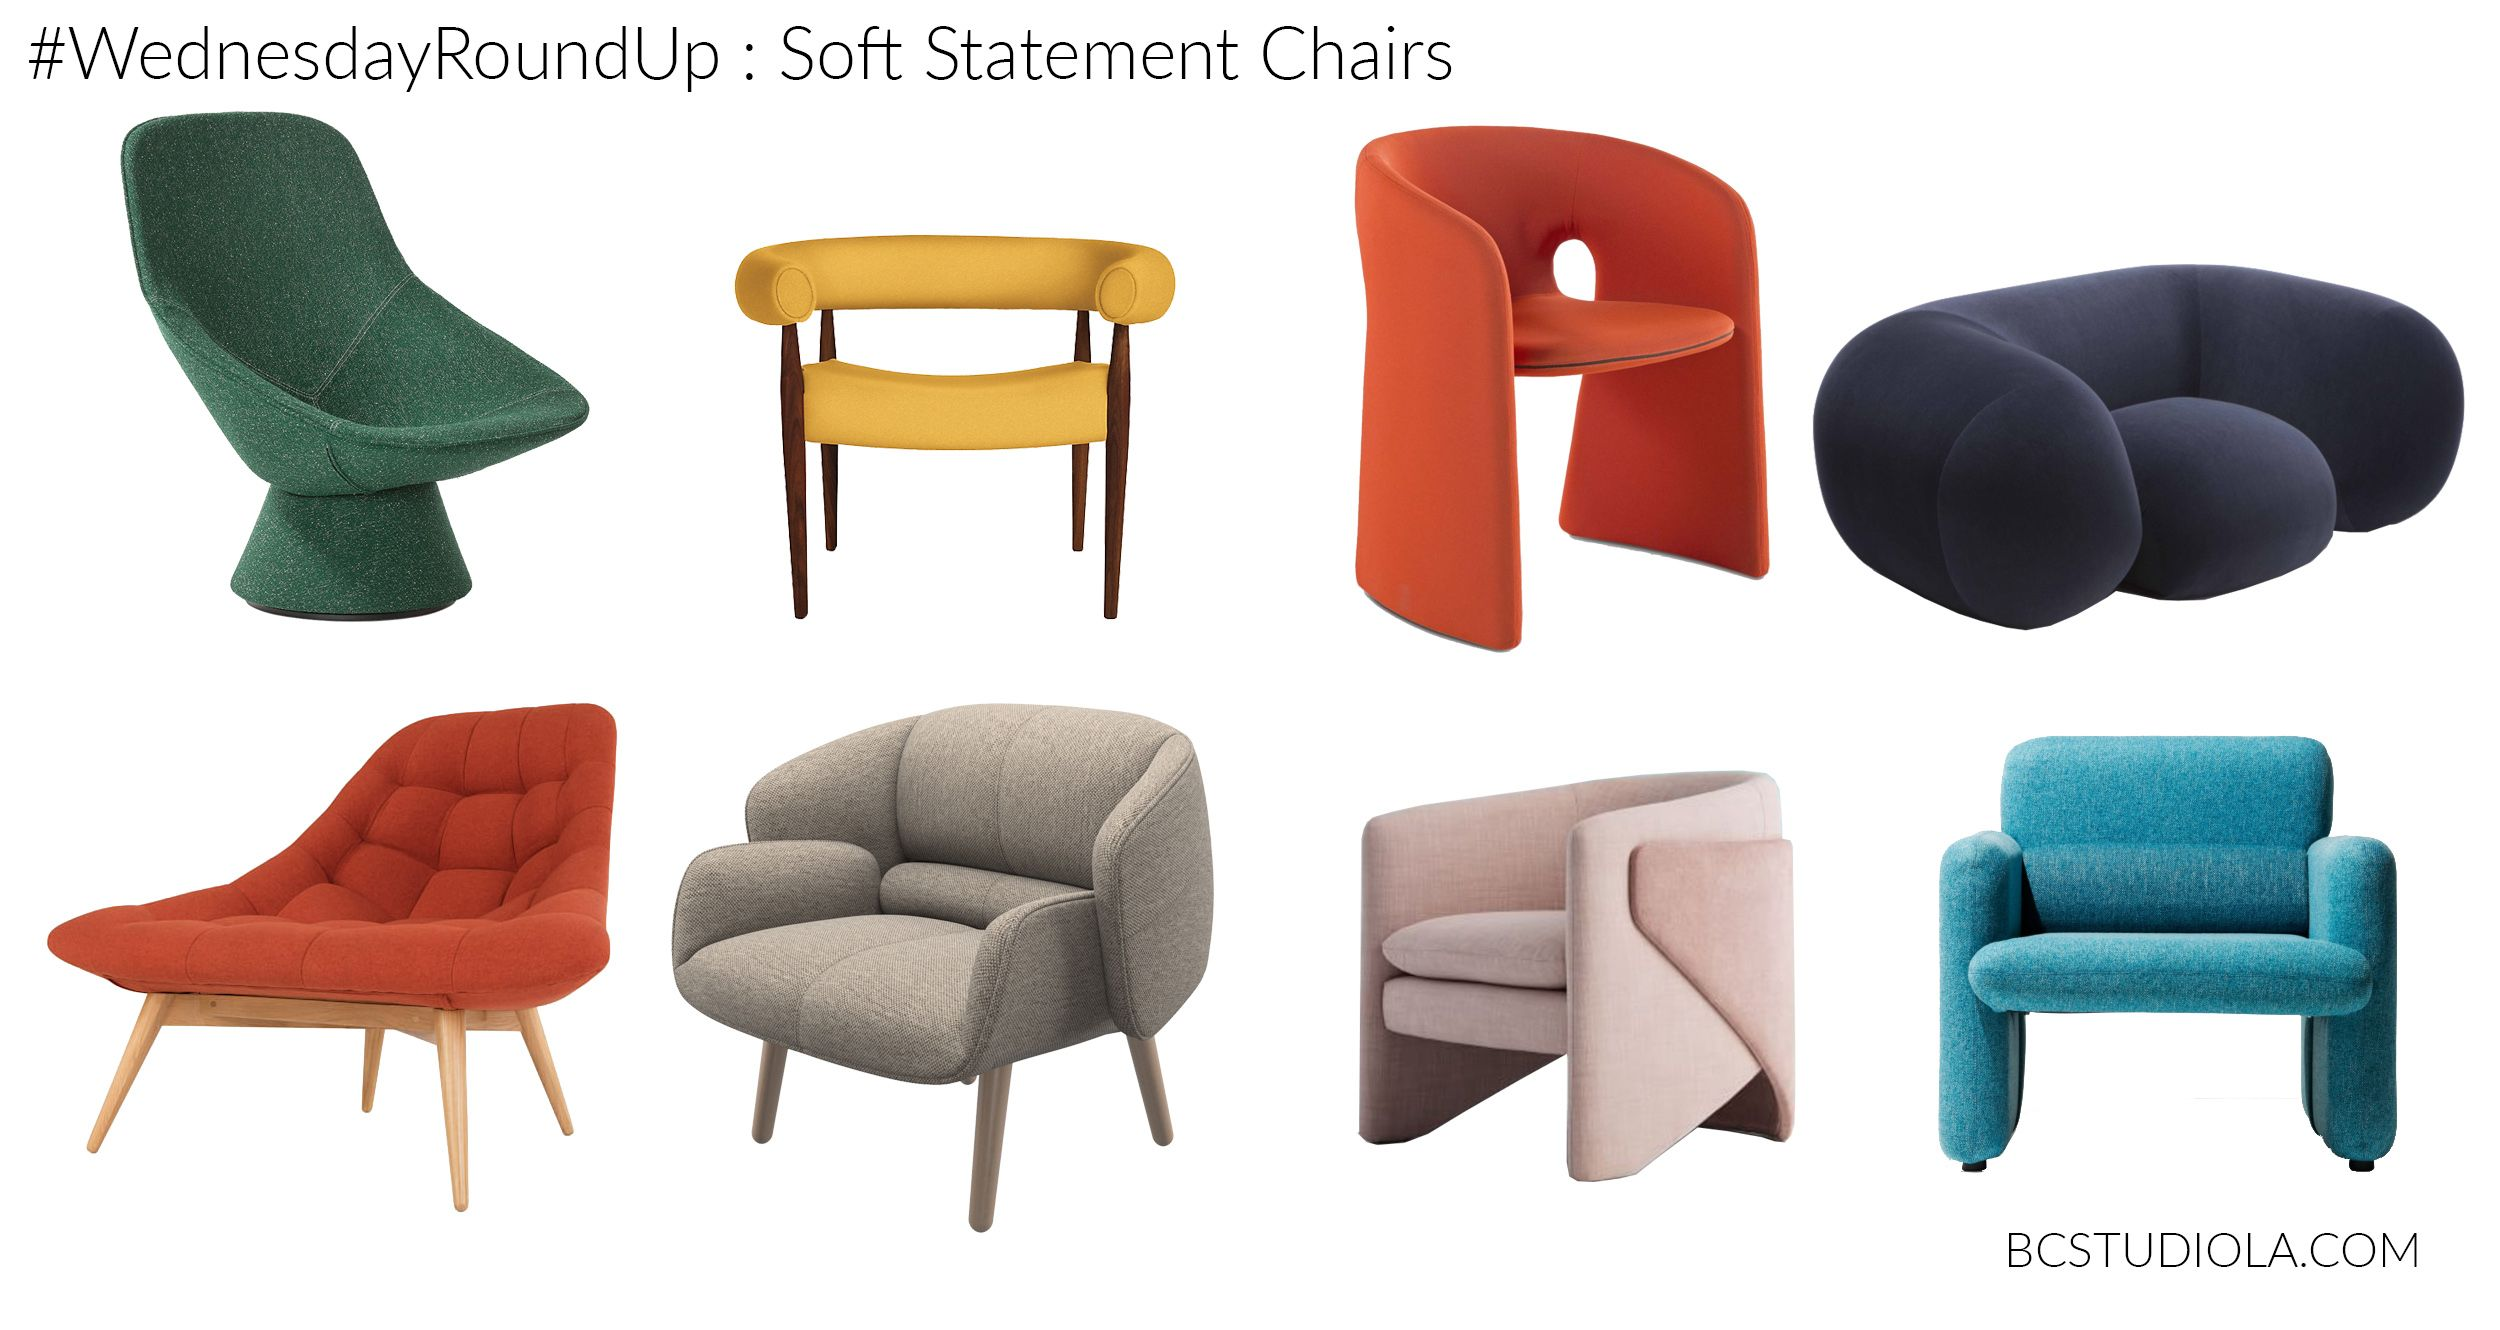 Wednesday Round Up Soft Statement Chairs Statement Chairs Chair Eames Lounge Chair